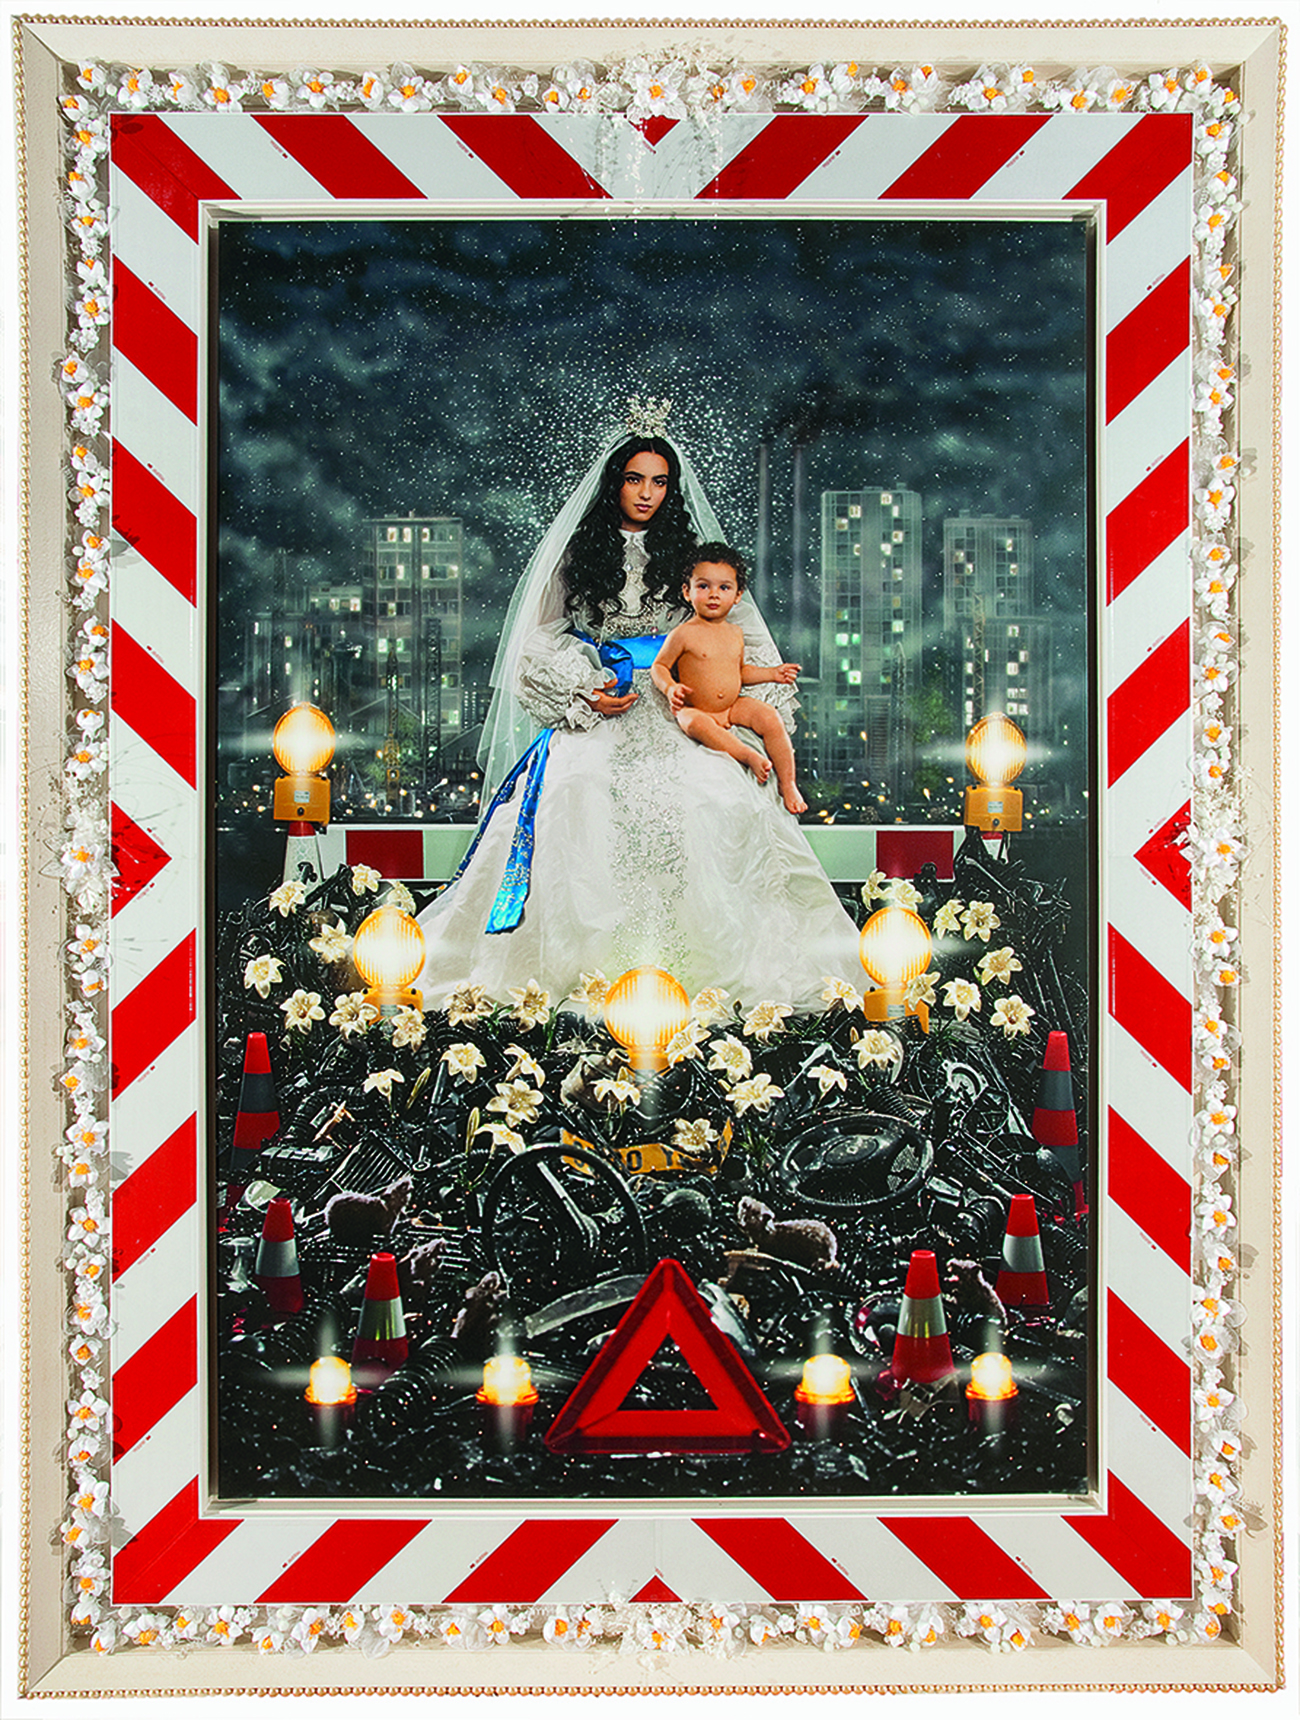 Pierre et Gilles (Pierre Commoy und Gilles Blanchard), La Vierge à l'enfant (Hafsia Herzi & Loric), 2009, Fotografie, Inkjet auf Leinwand und Ölfarbe. Courtesy the artists & Galerie Templon Paris/Bruxelles